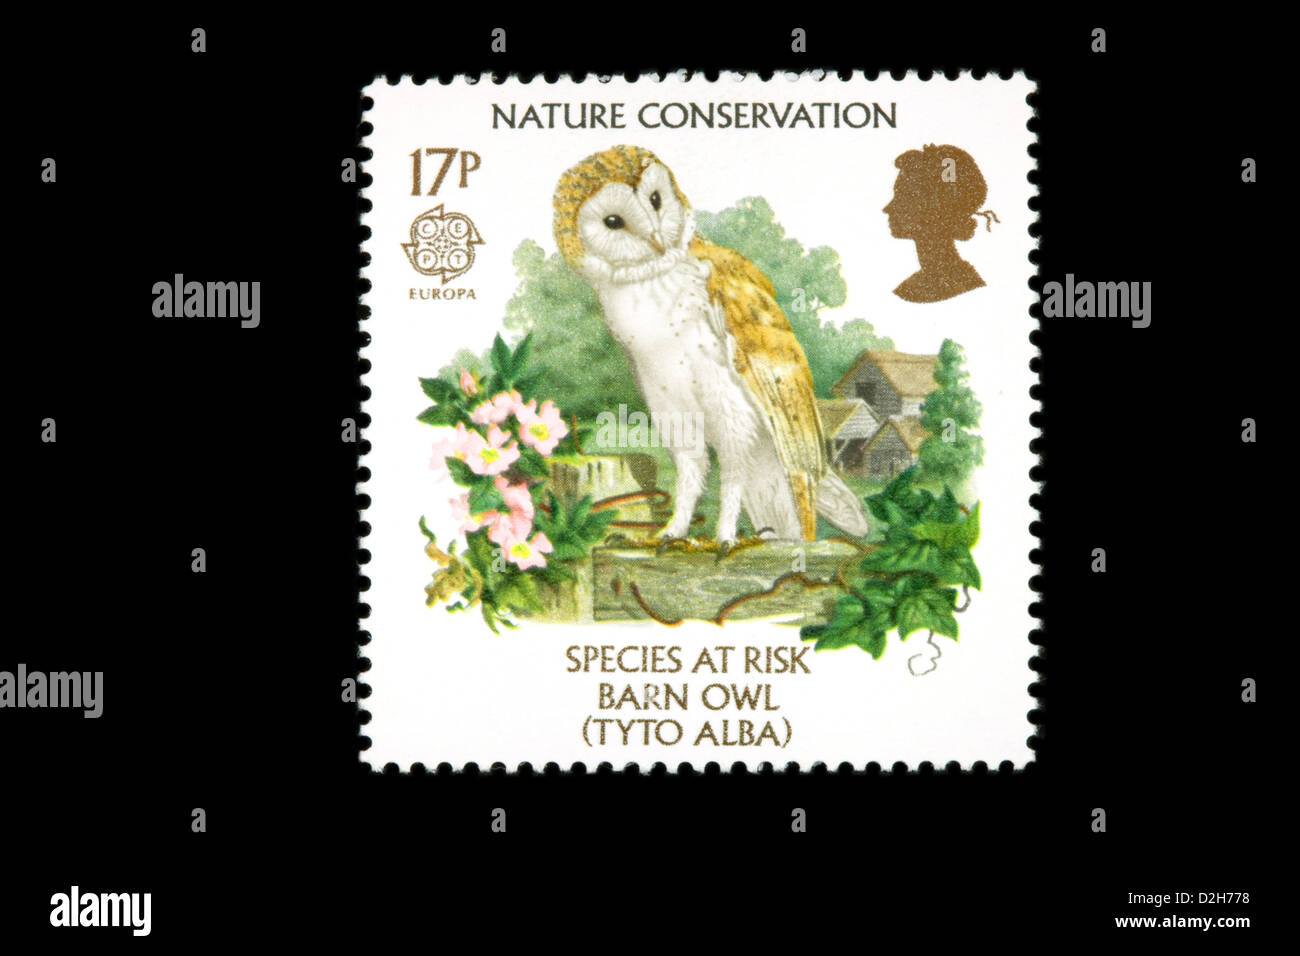 The 1986 Europa British Stamp stamps issue on Nature Conservation featuring a barn owl, UK - Stock Image